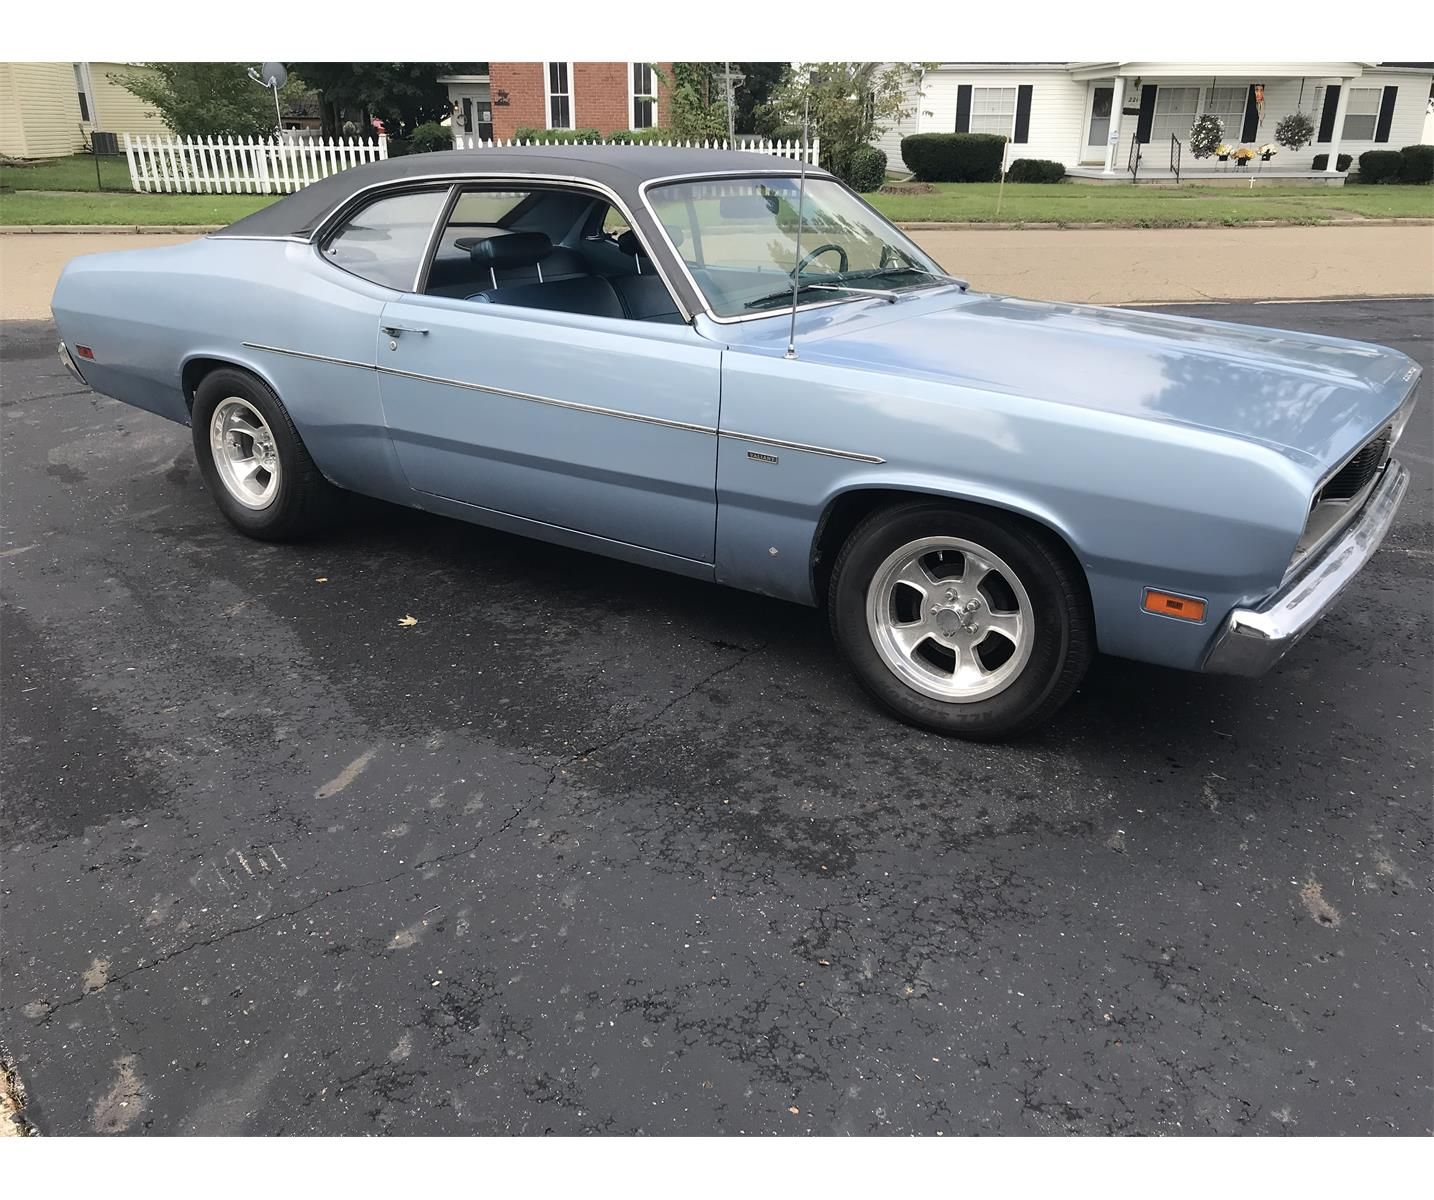 Large Photo Of '70 Duster - OLUI (With Images)